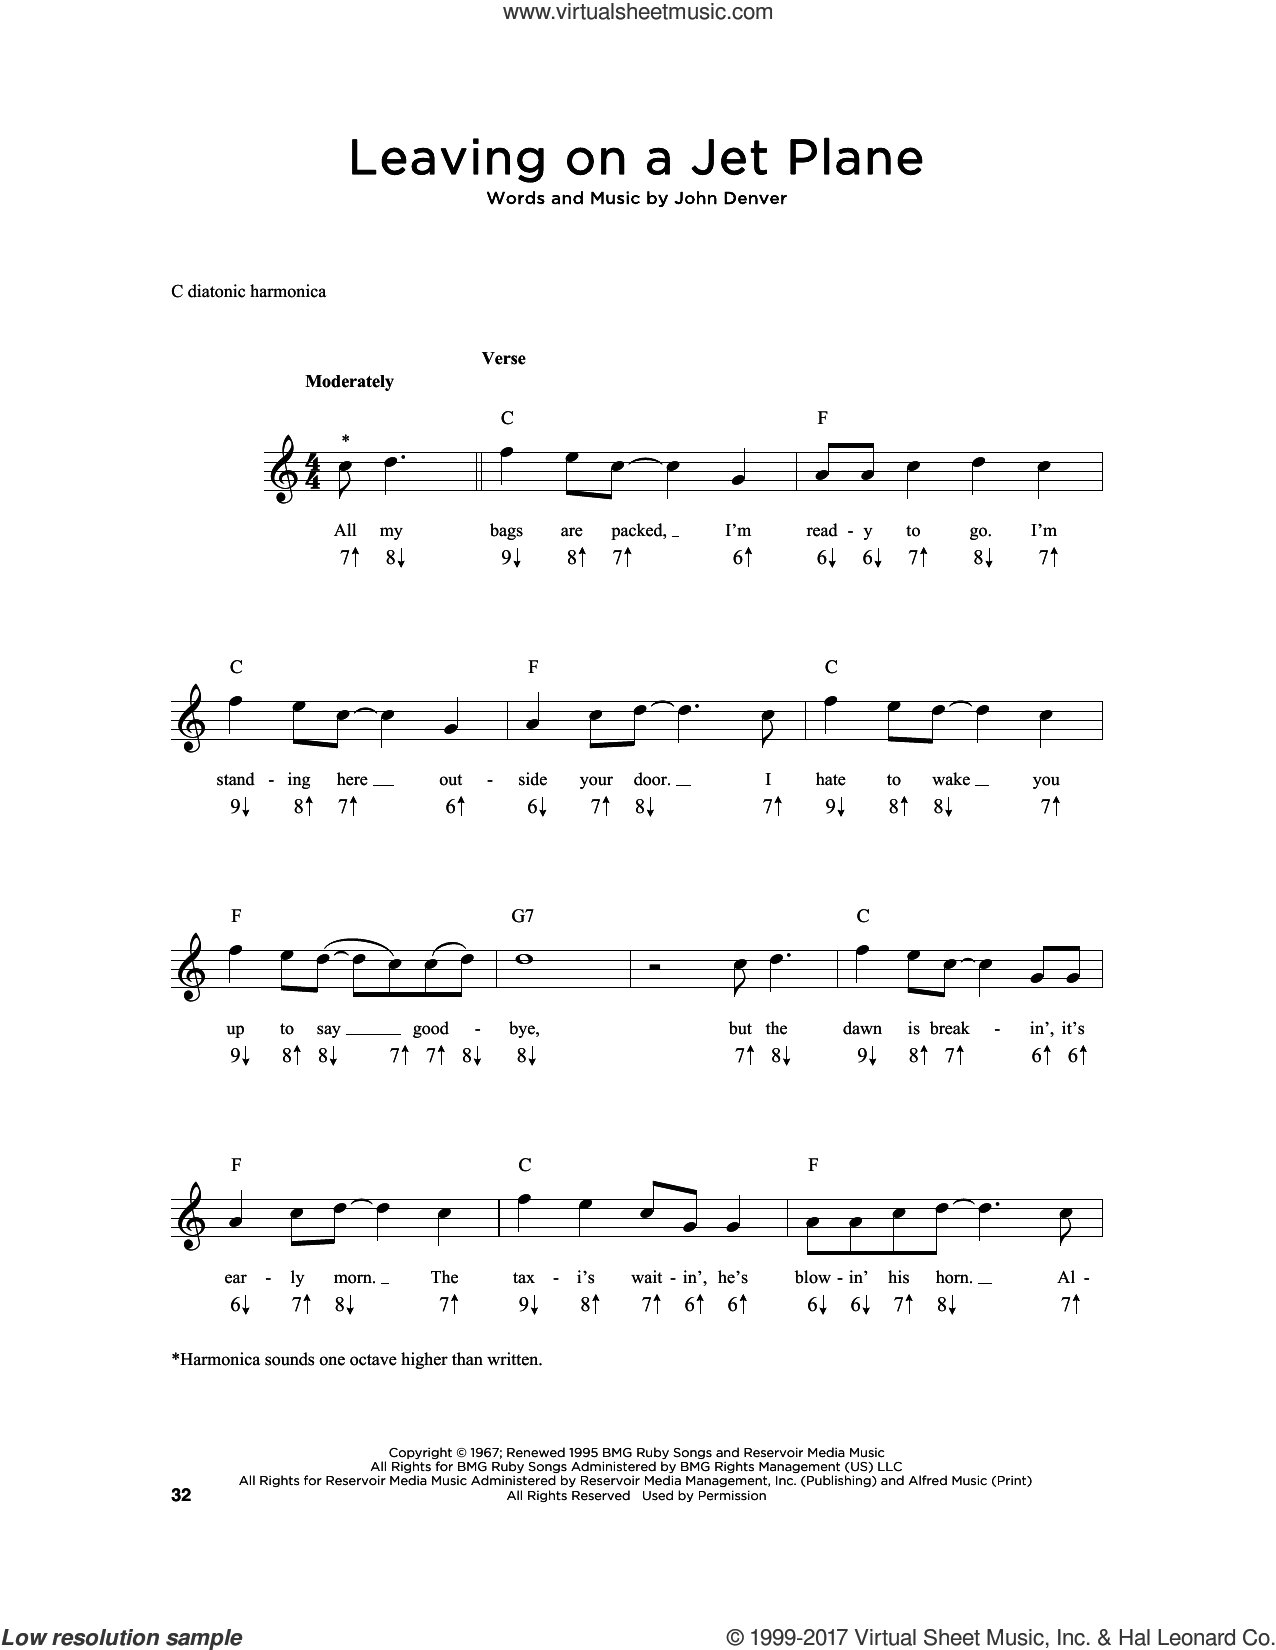 Leaving On A Jet Plane sheet music for harmonica solo by John Denver and Peter, Paul & Mary, intermediate skill level